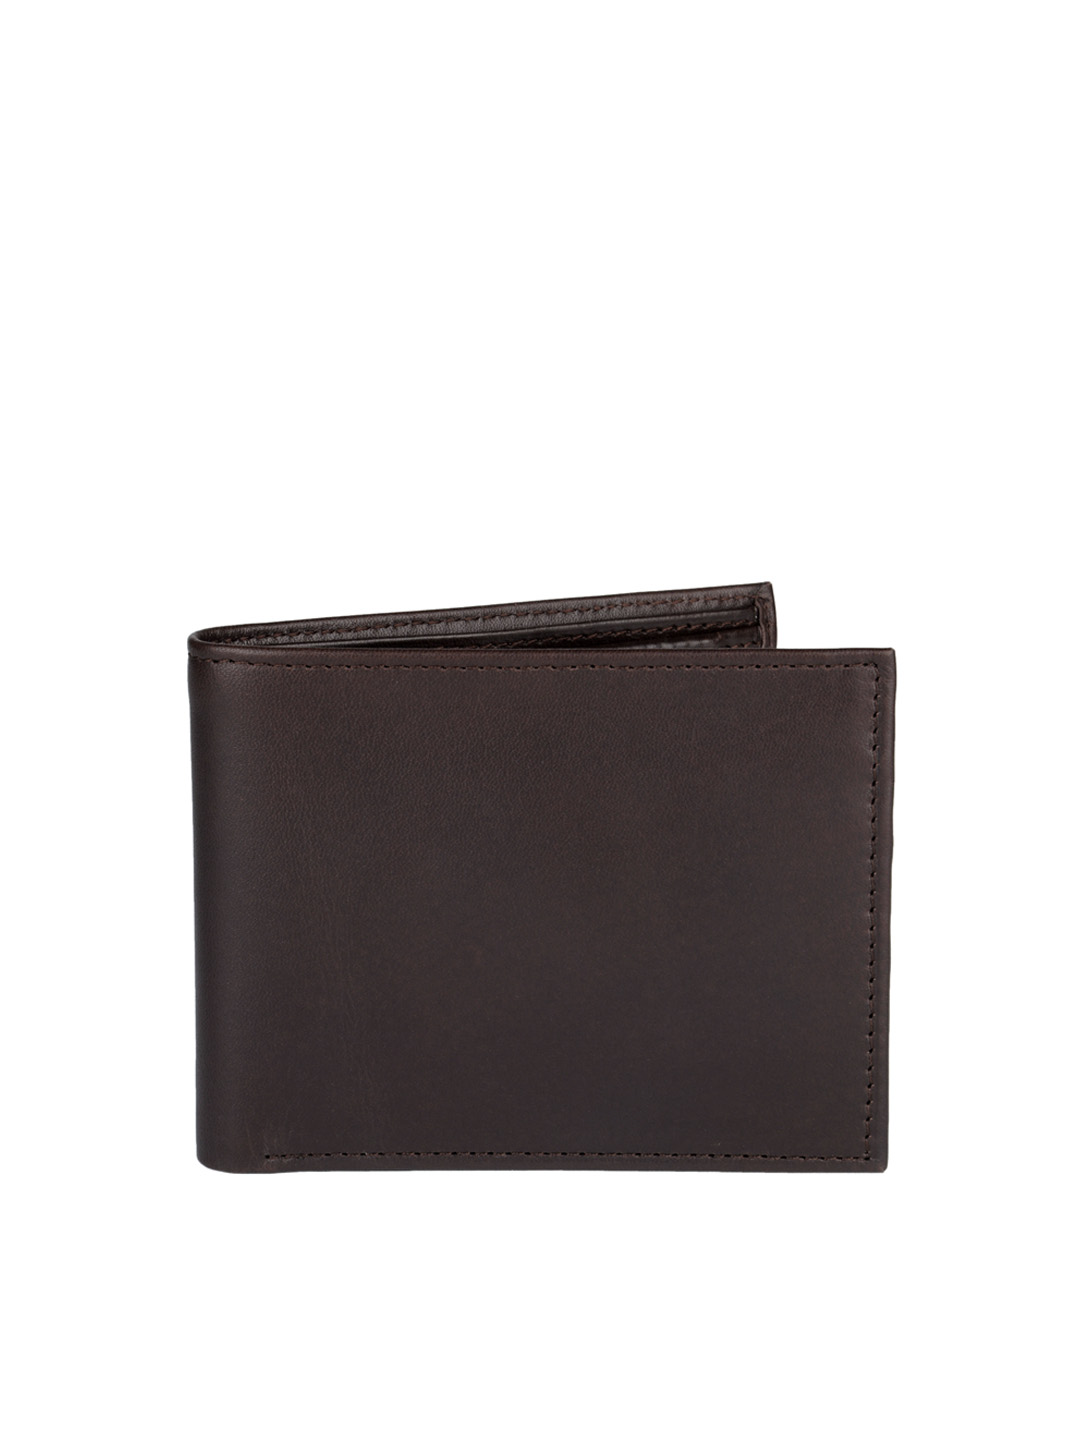 OTLS Men Josh Brown Wallet